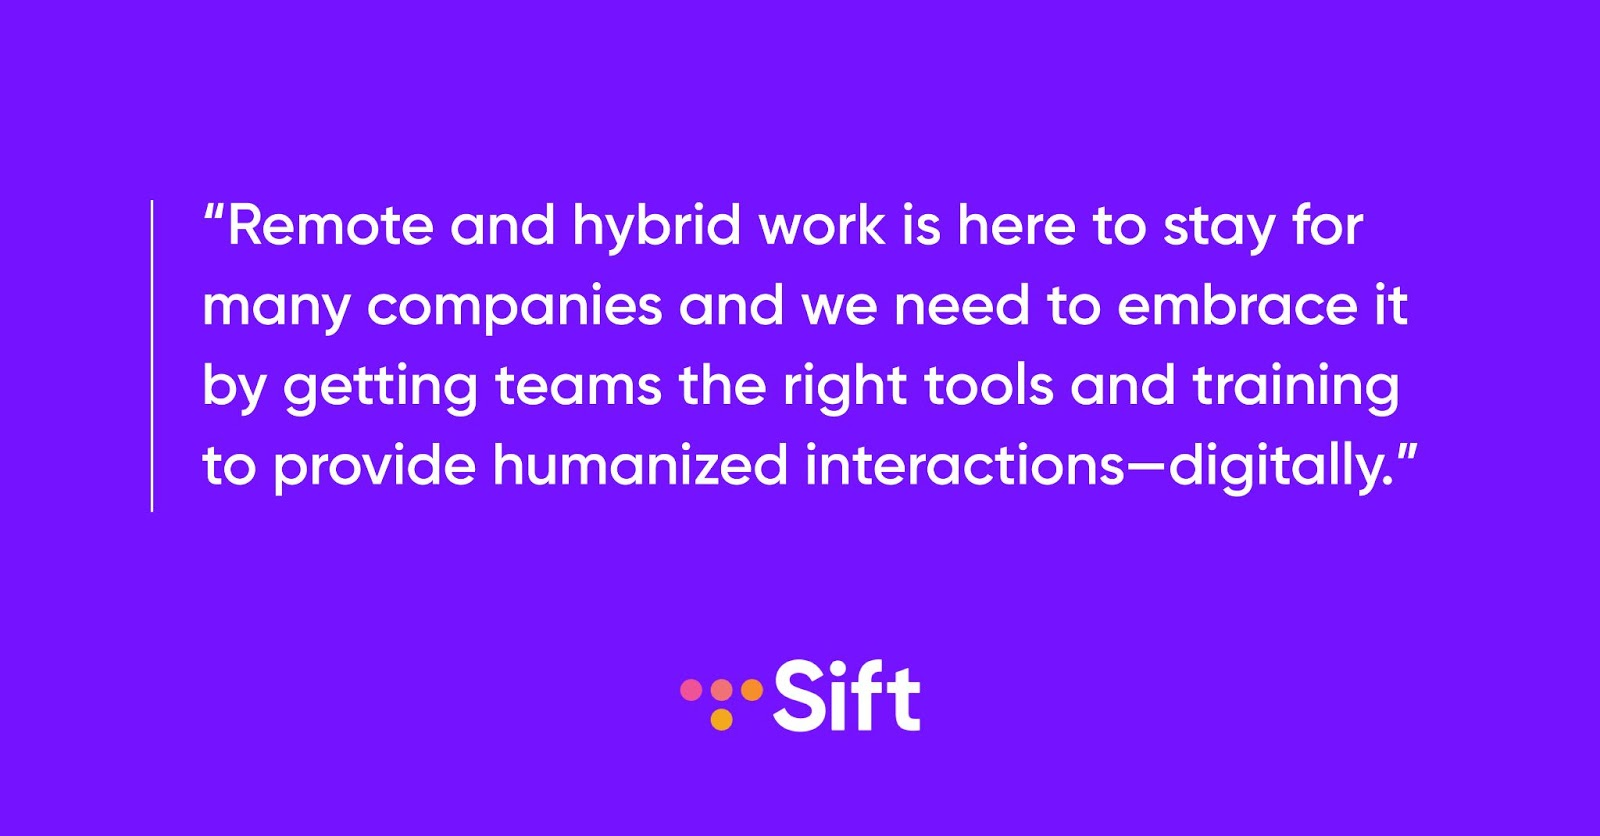 Remote and hybrid teams are here to stay for many companies and we need to embrace it by getting teams the right tools and training to provide humanized interactions – digitally.